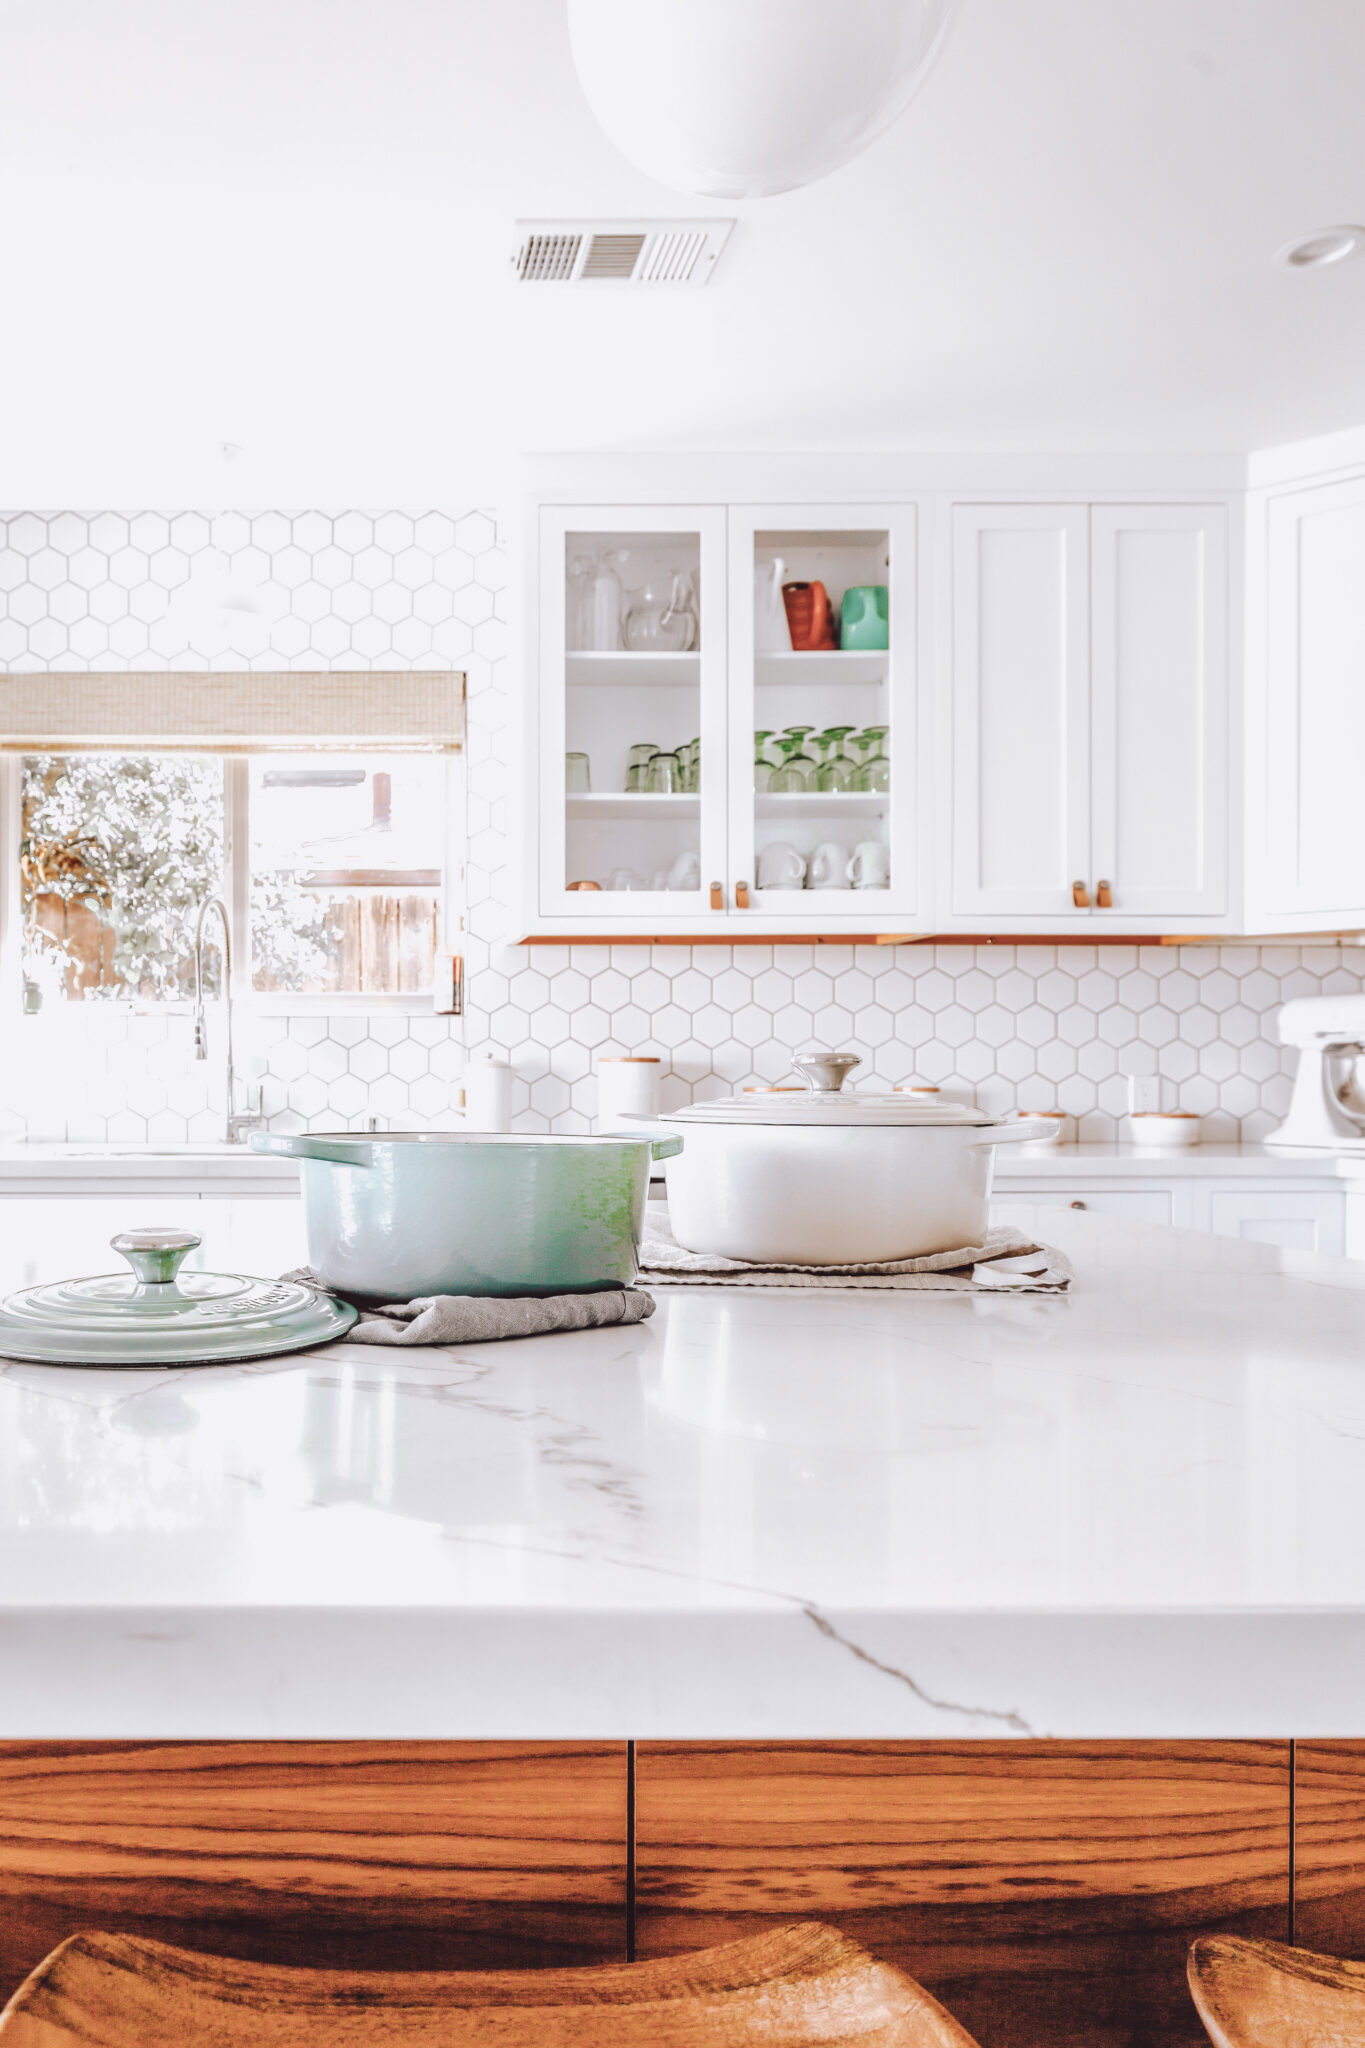 A white and bright kitchen shows a functional kitchen with blinds. This article gives 4 ideas for kitchen blinds.